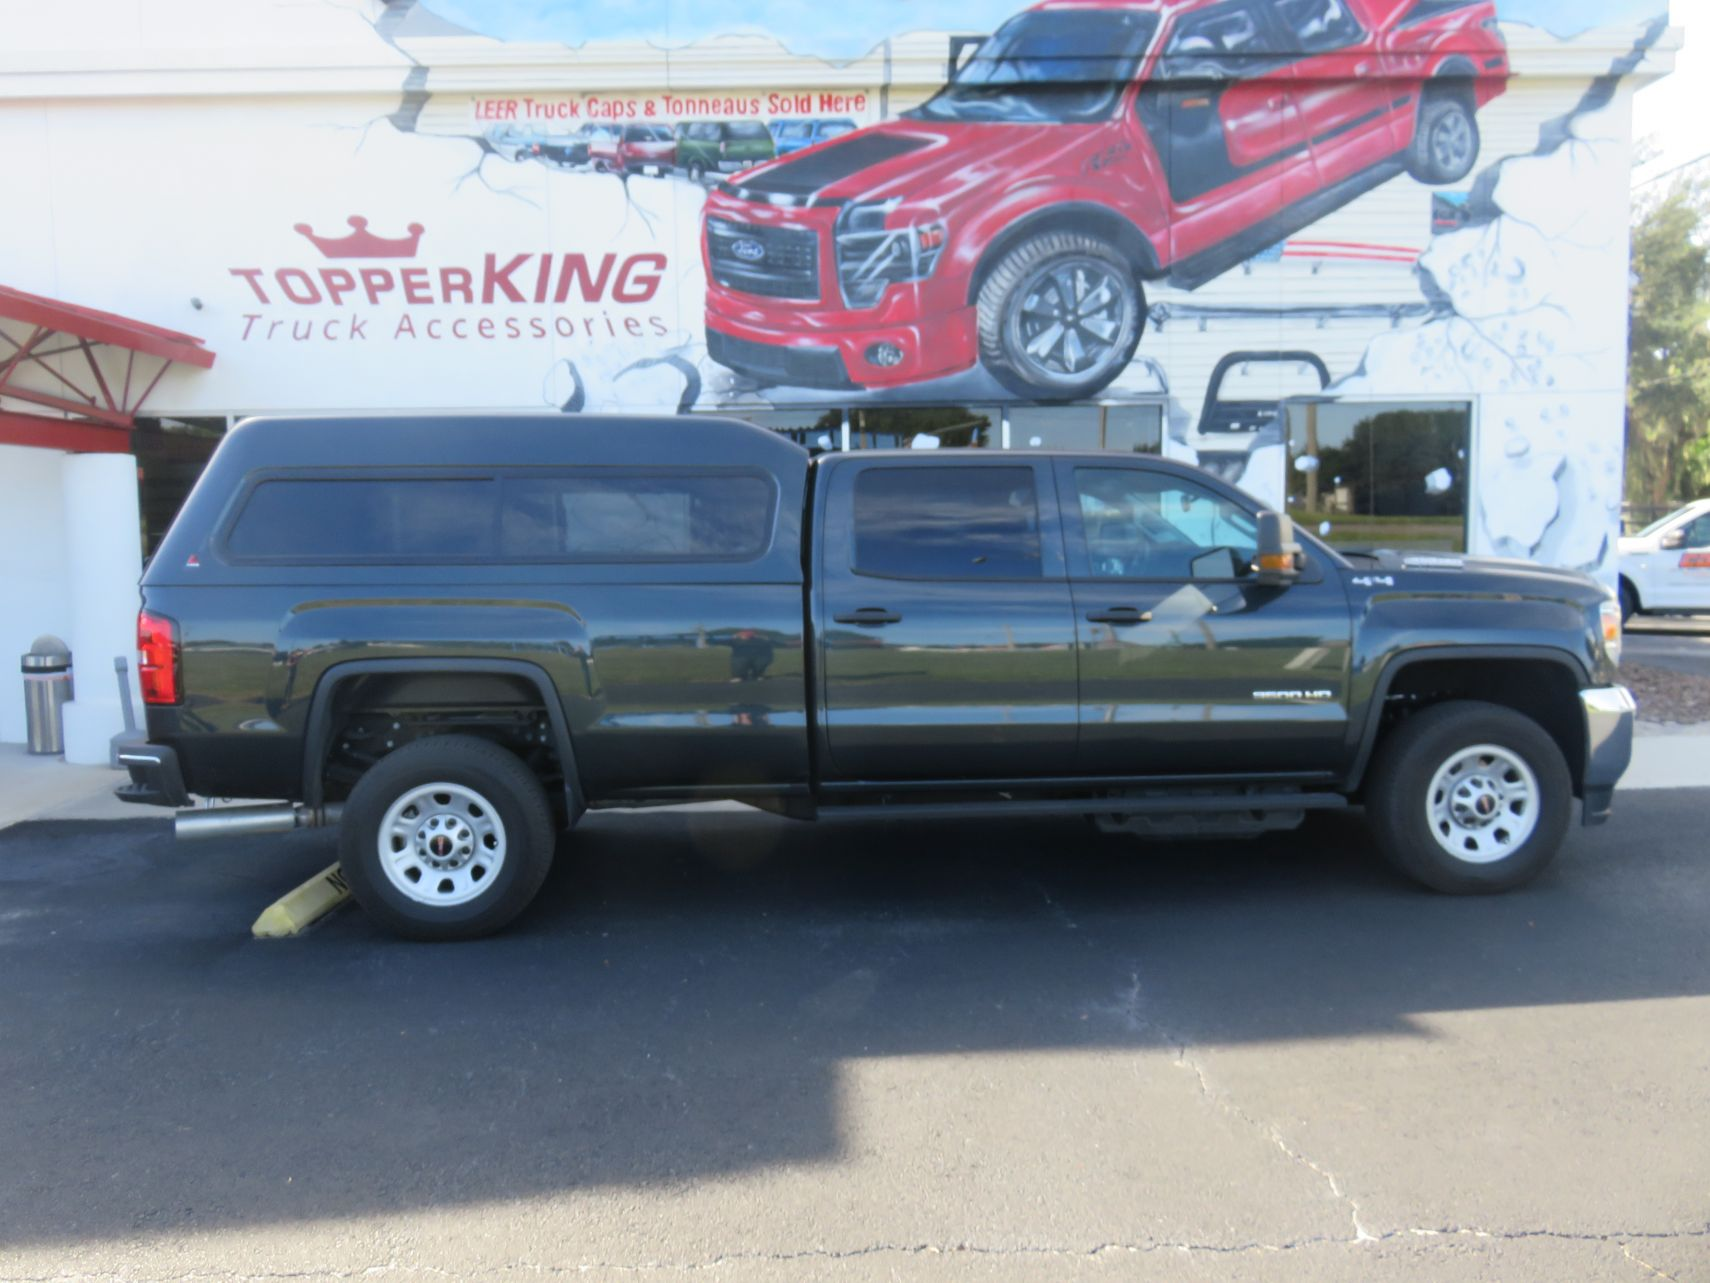 2019 Chevrolet Silverado with LEER 180 Nerf bars, Hitch, and Tint by TopperKING in Brandon, FL 813-689-2449 or Clearwater, FL 727-530-9066. Call today!